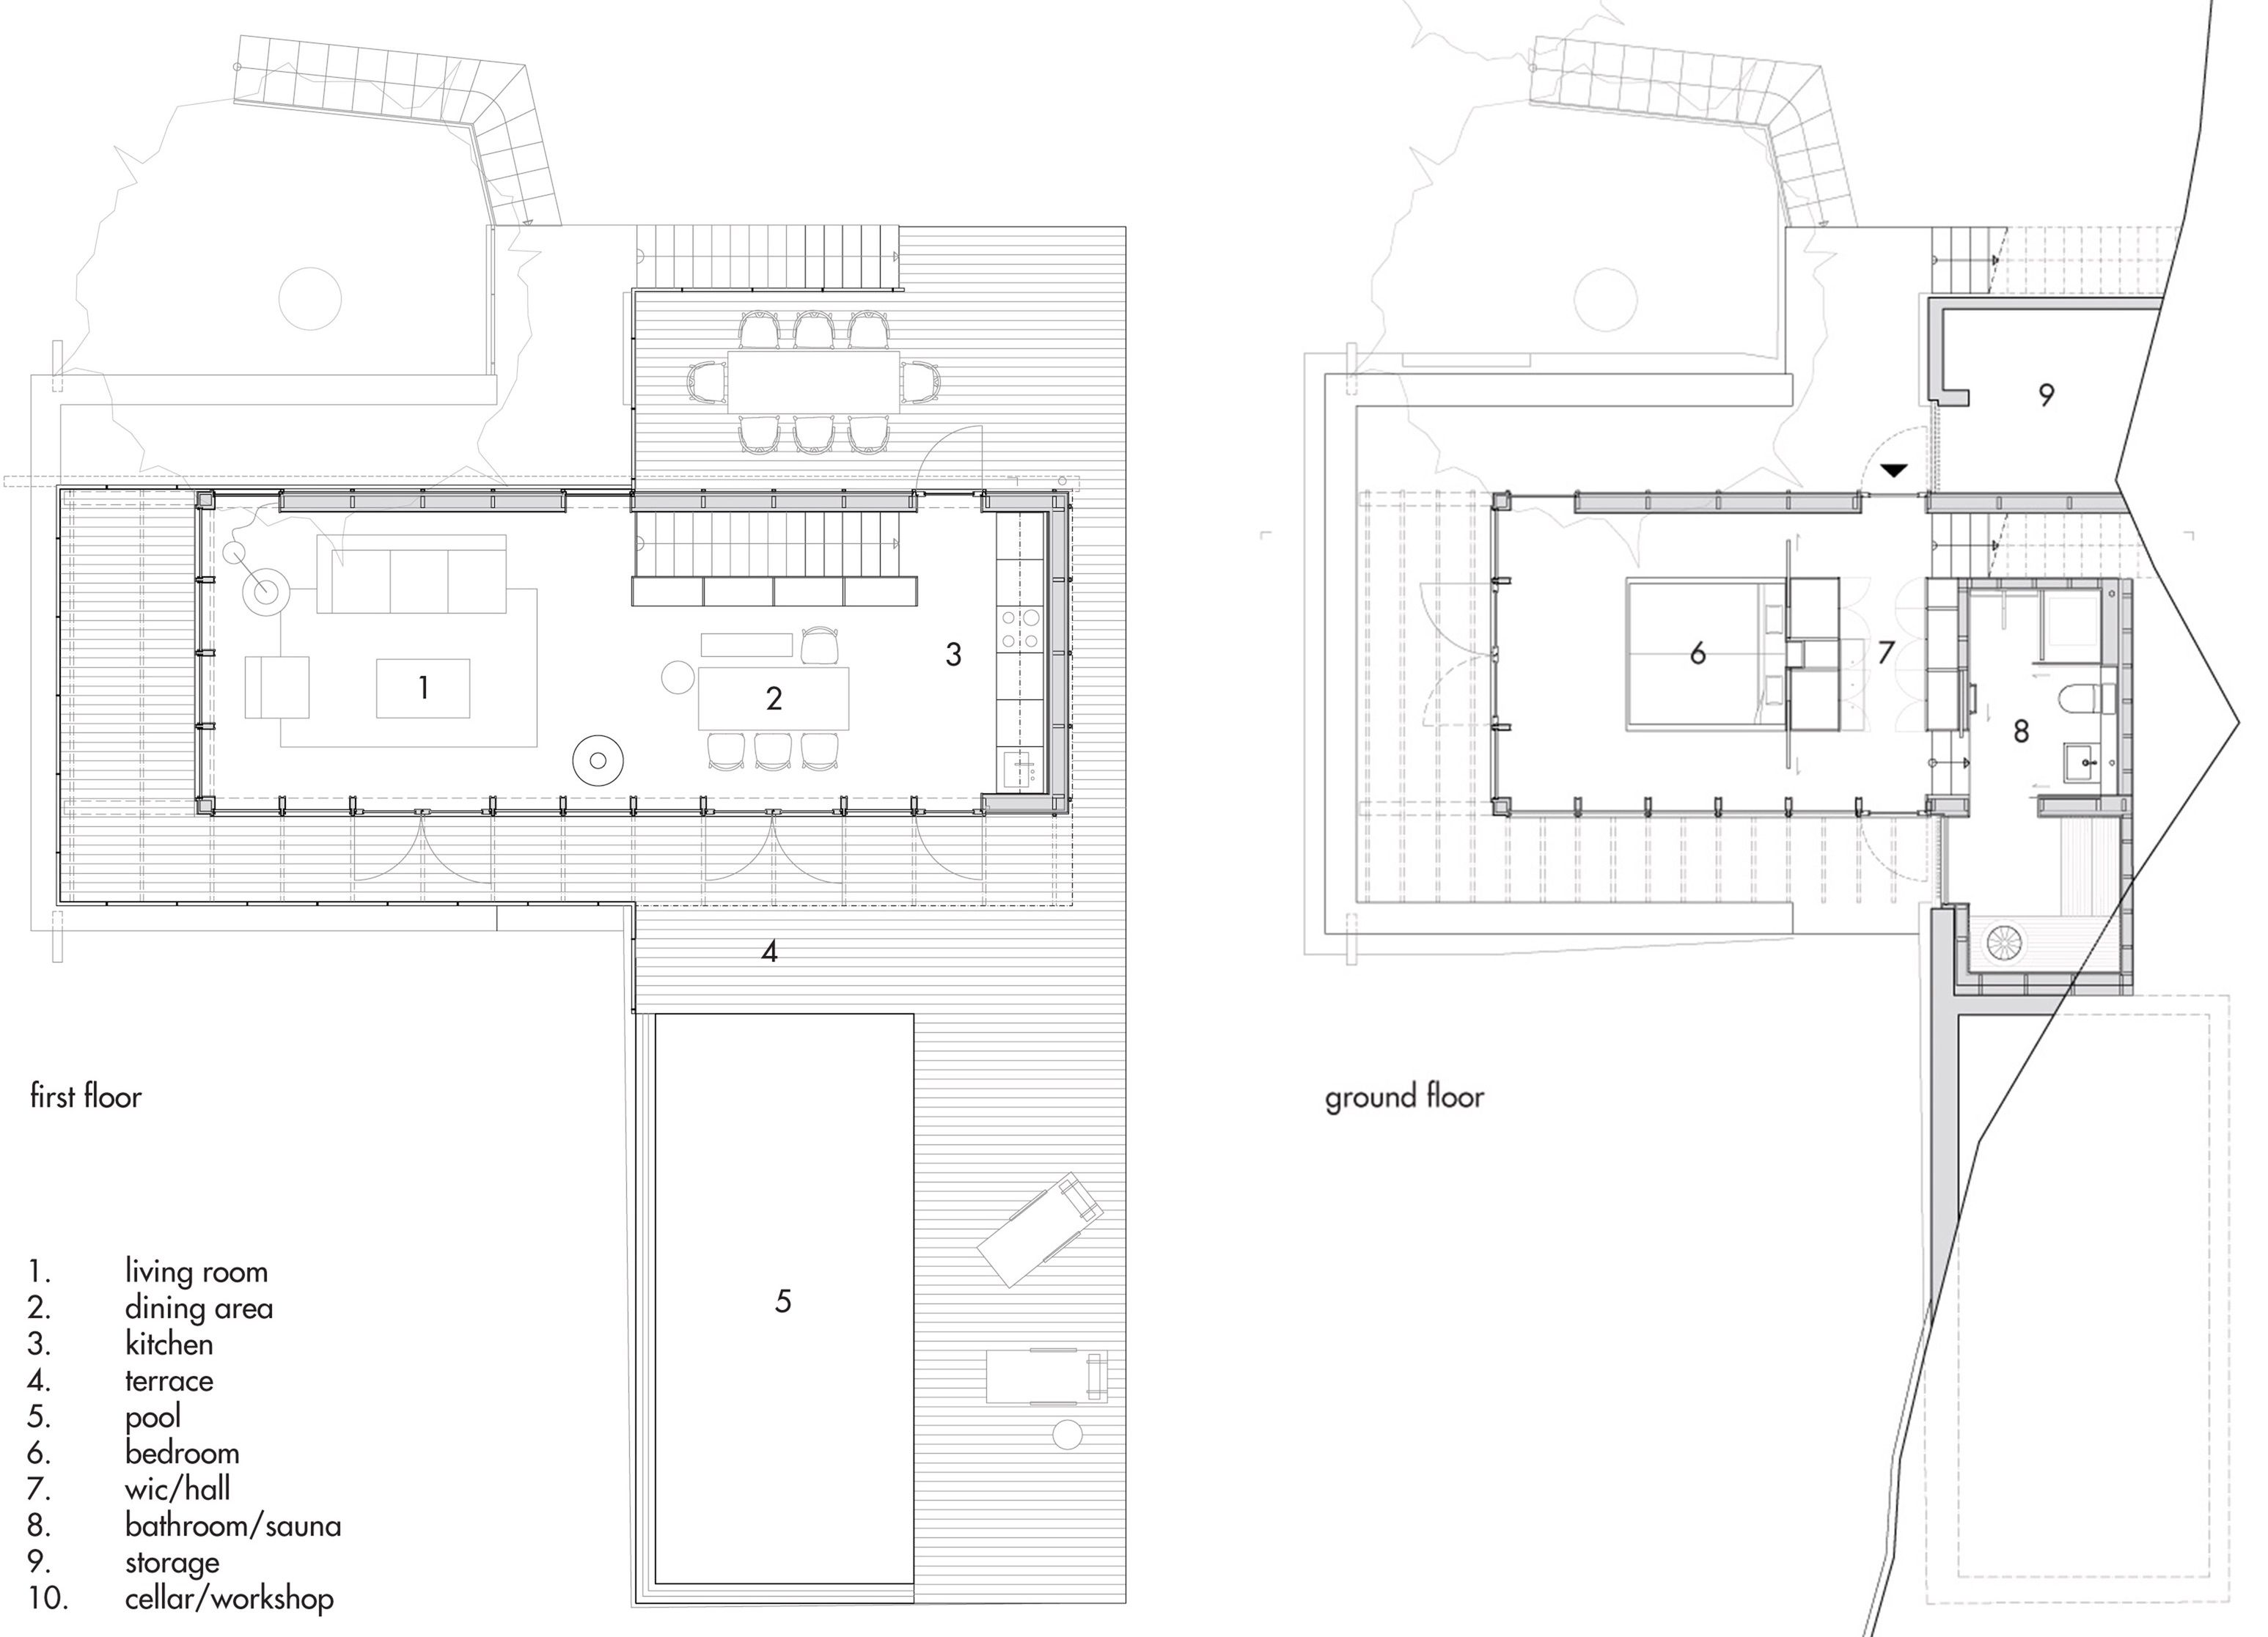 0dc770ed3b2cf8144940515cb1e42c69 Top Result 50 New 7 Bedroom House Plans Gallery 2017 Hgd6